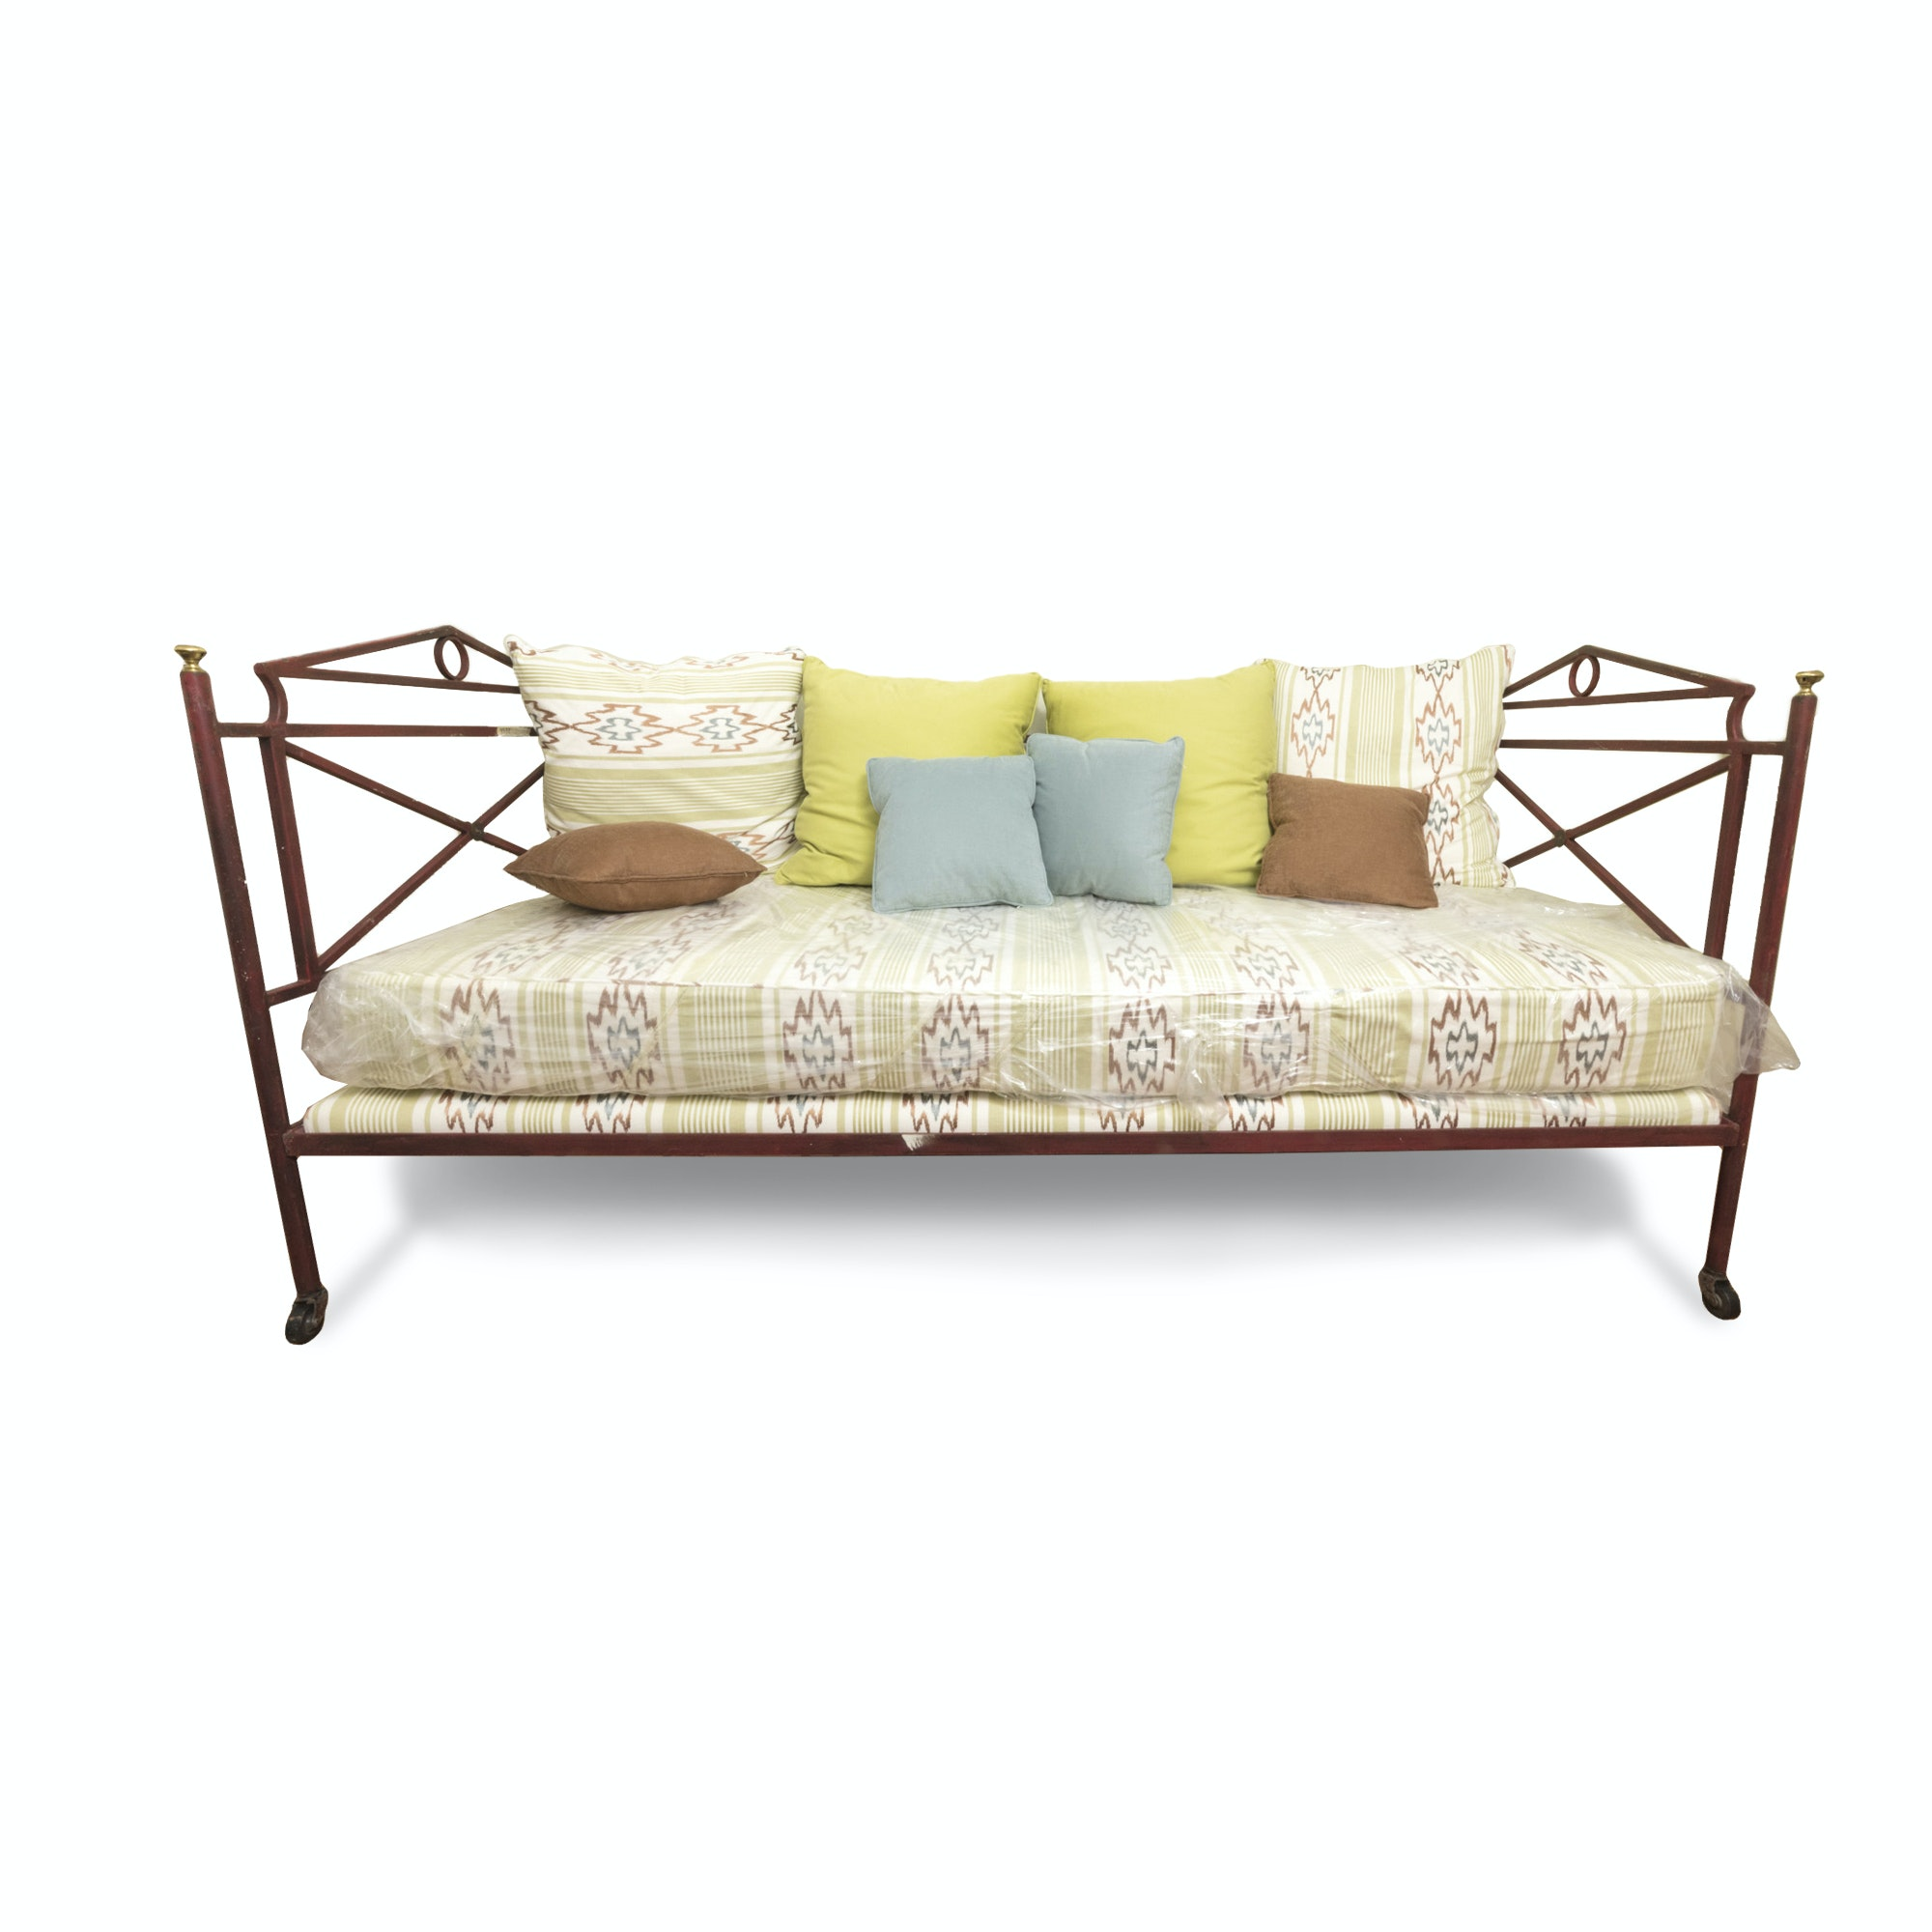 Campaign Inspired Daybed